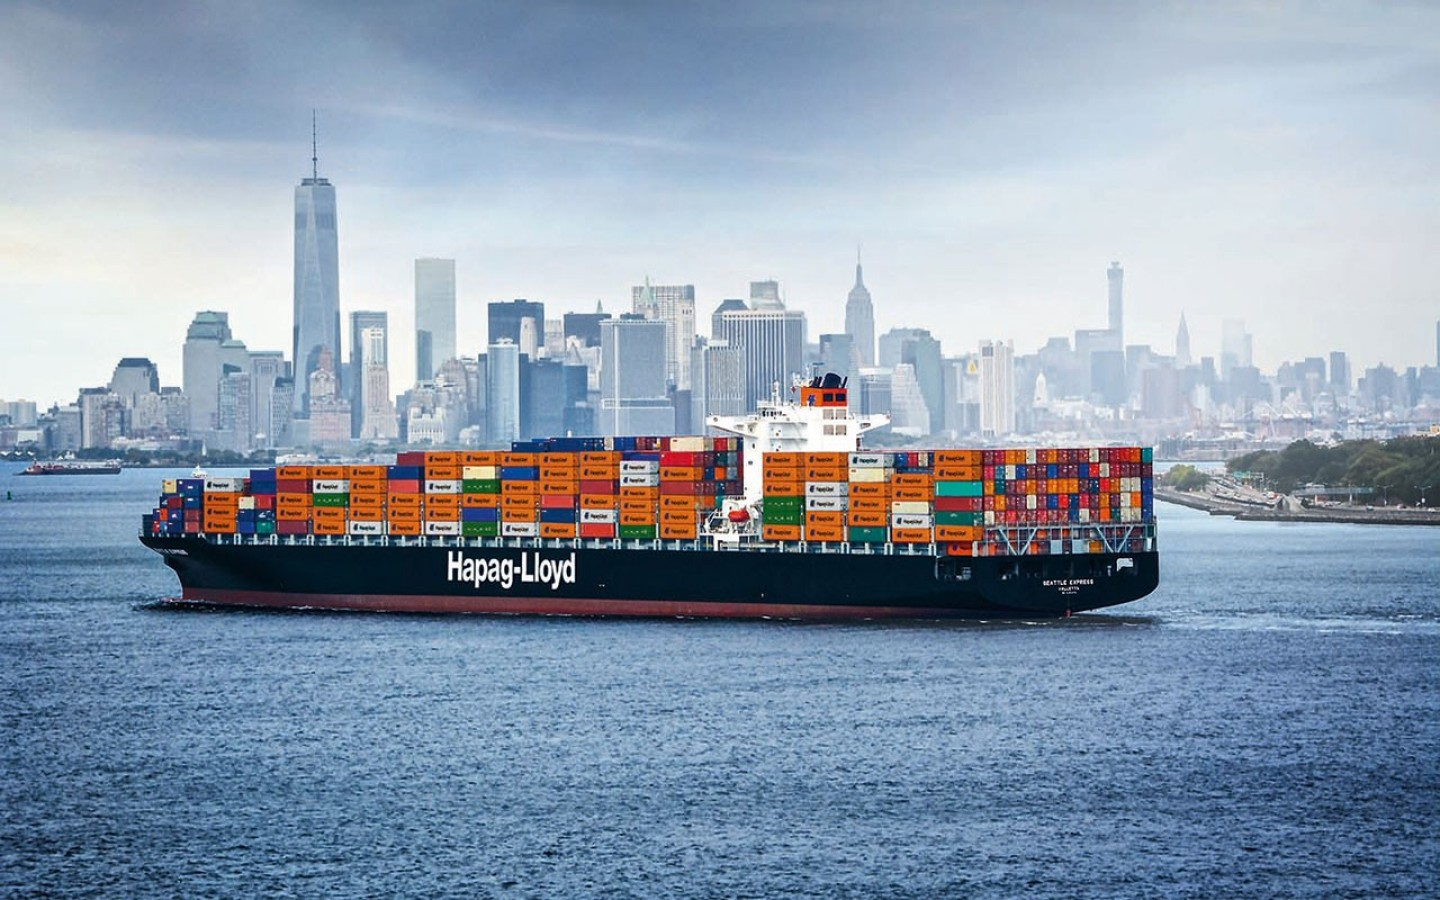 Hapag-Lloyd reports two COVID-19 cases on its ships